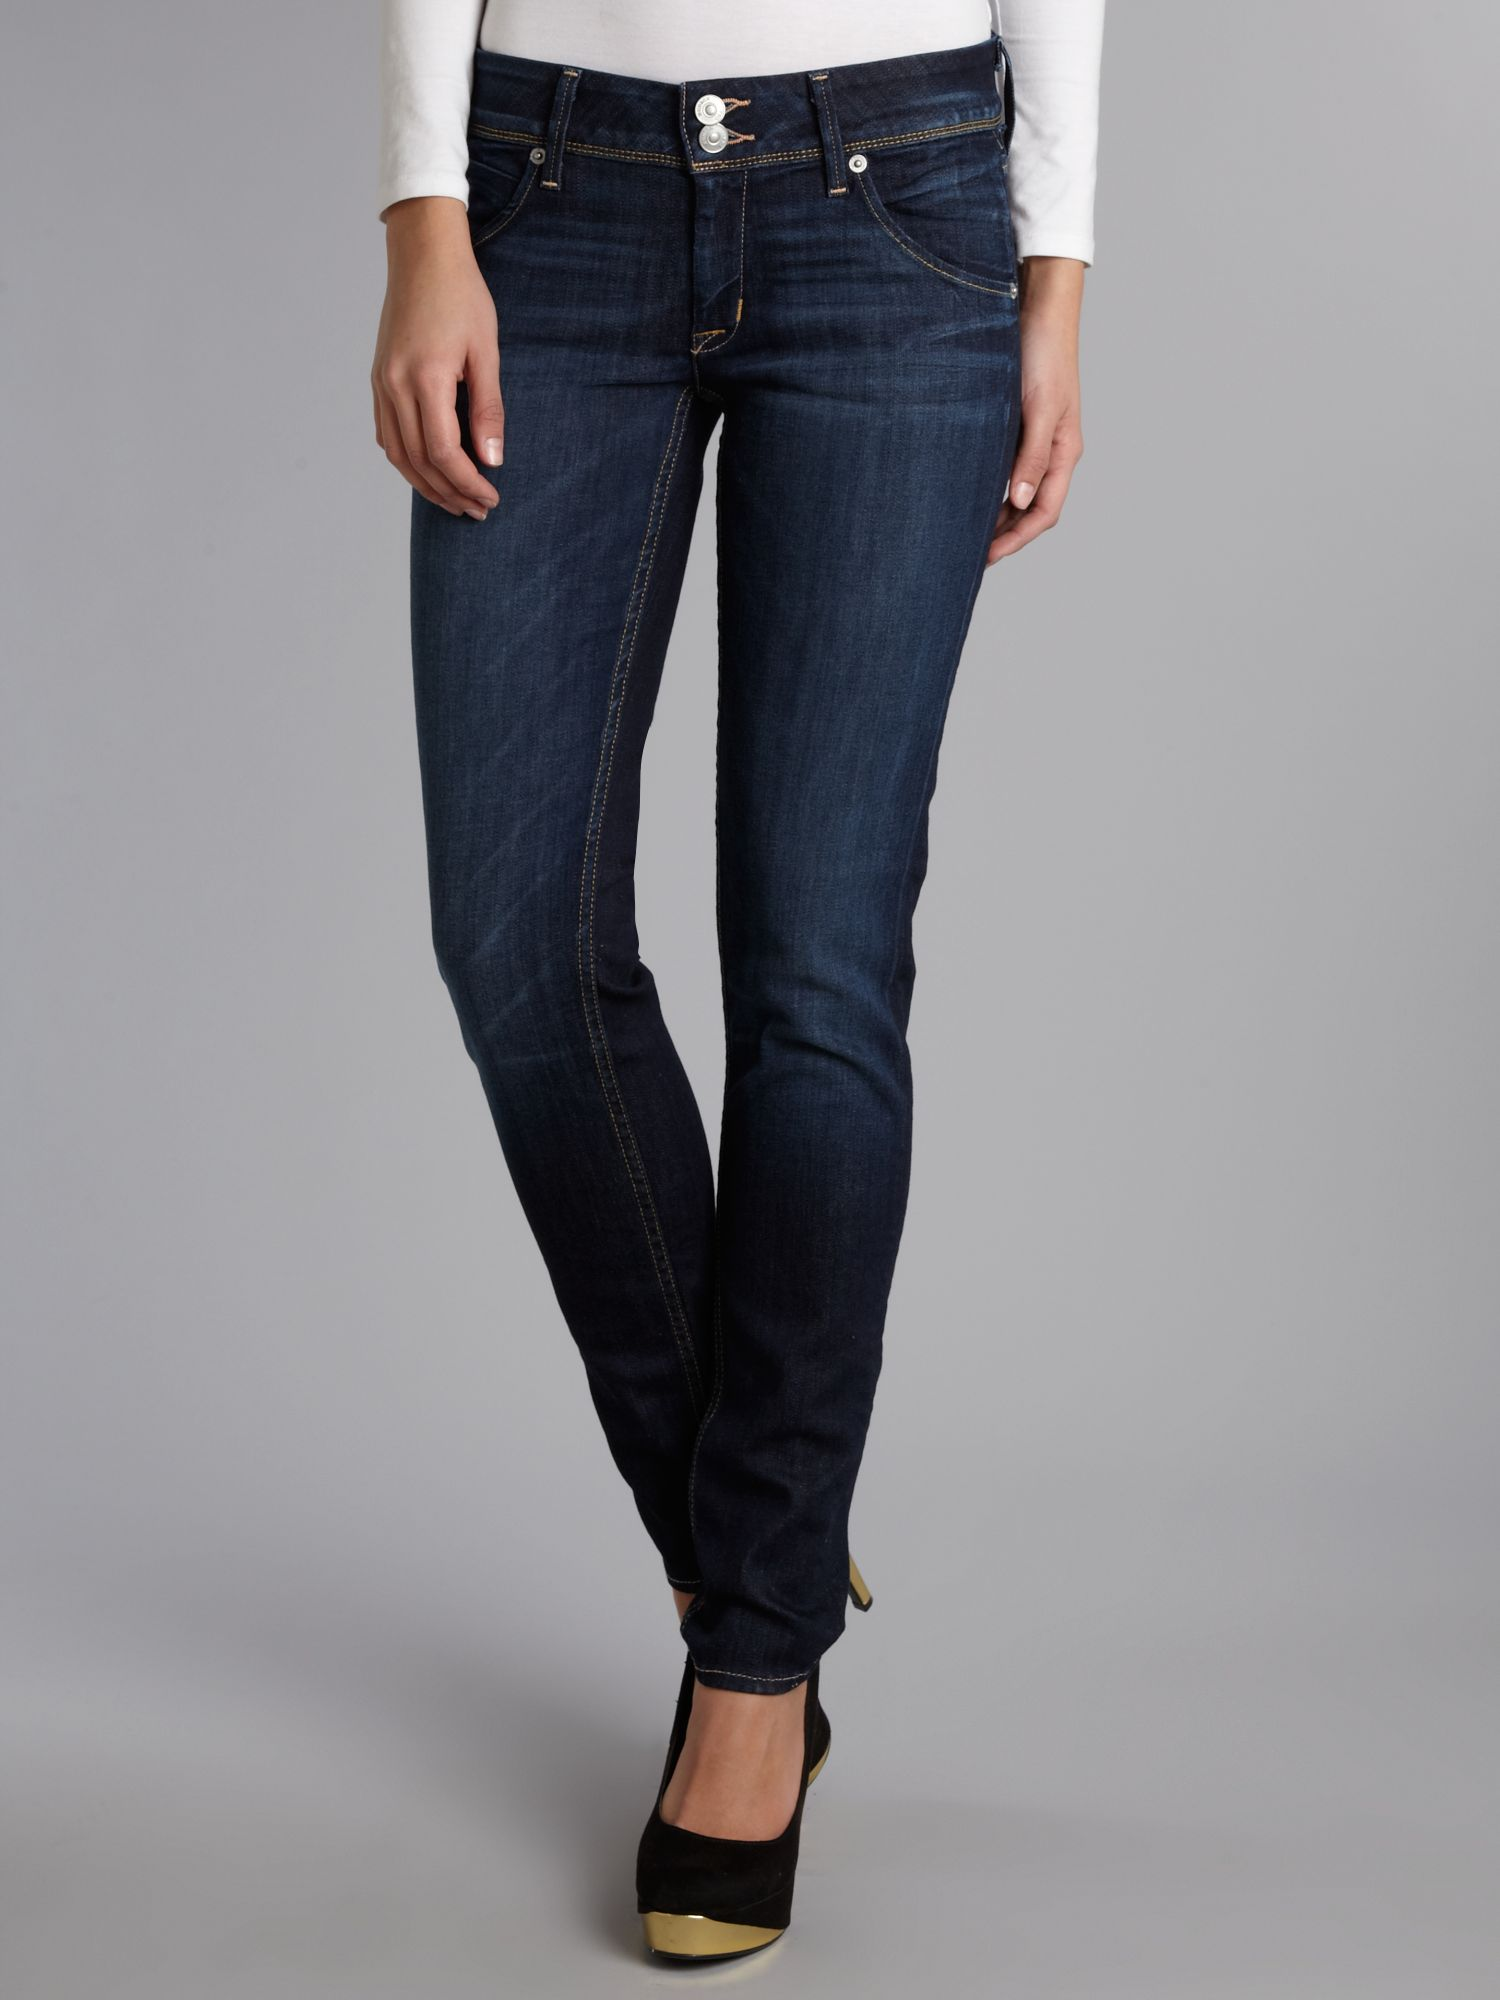 Collin signature skinny jeans in Stella